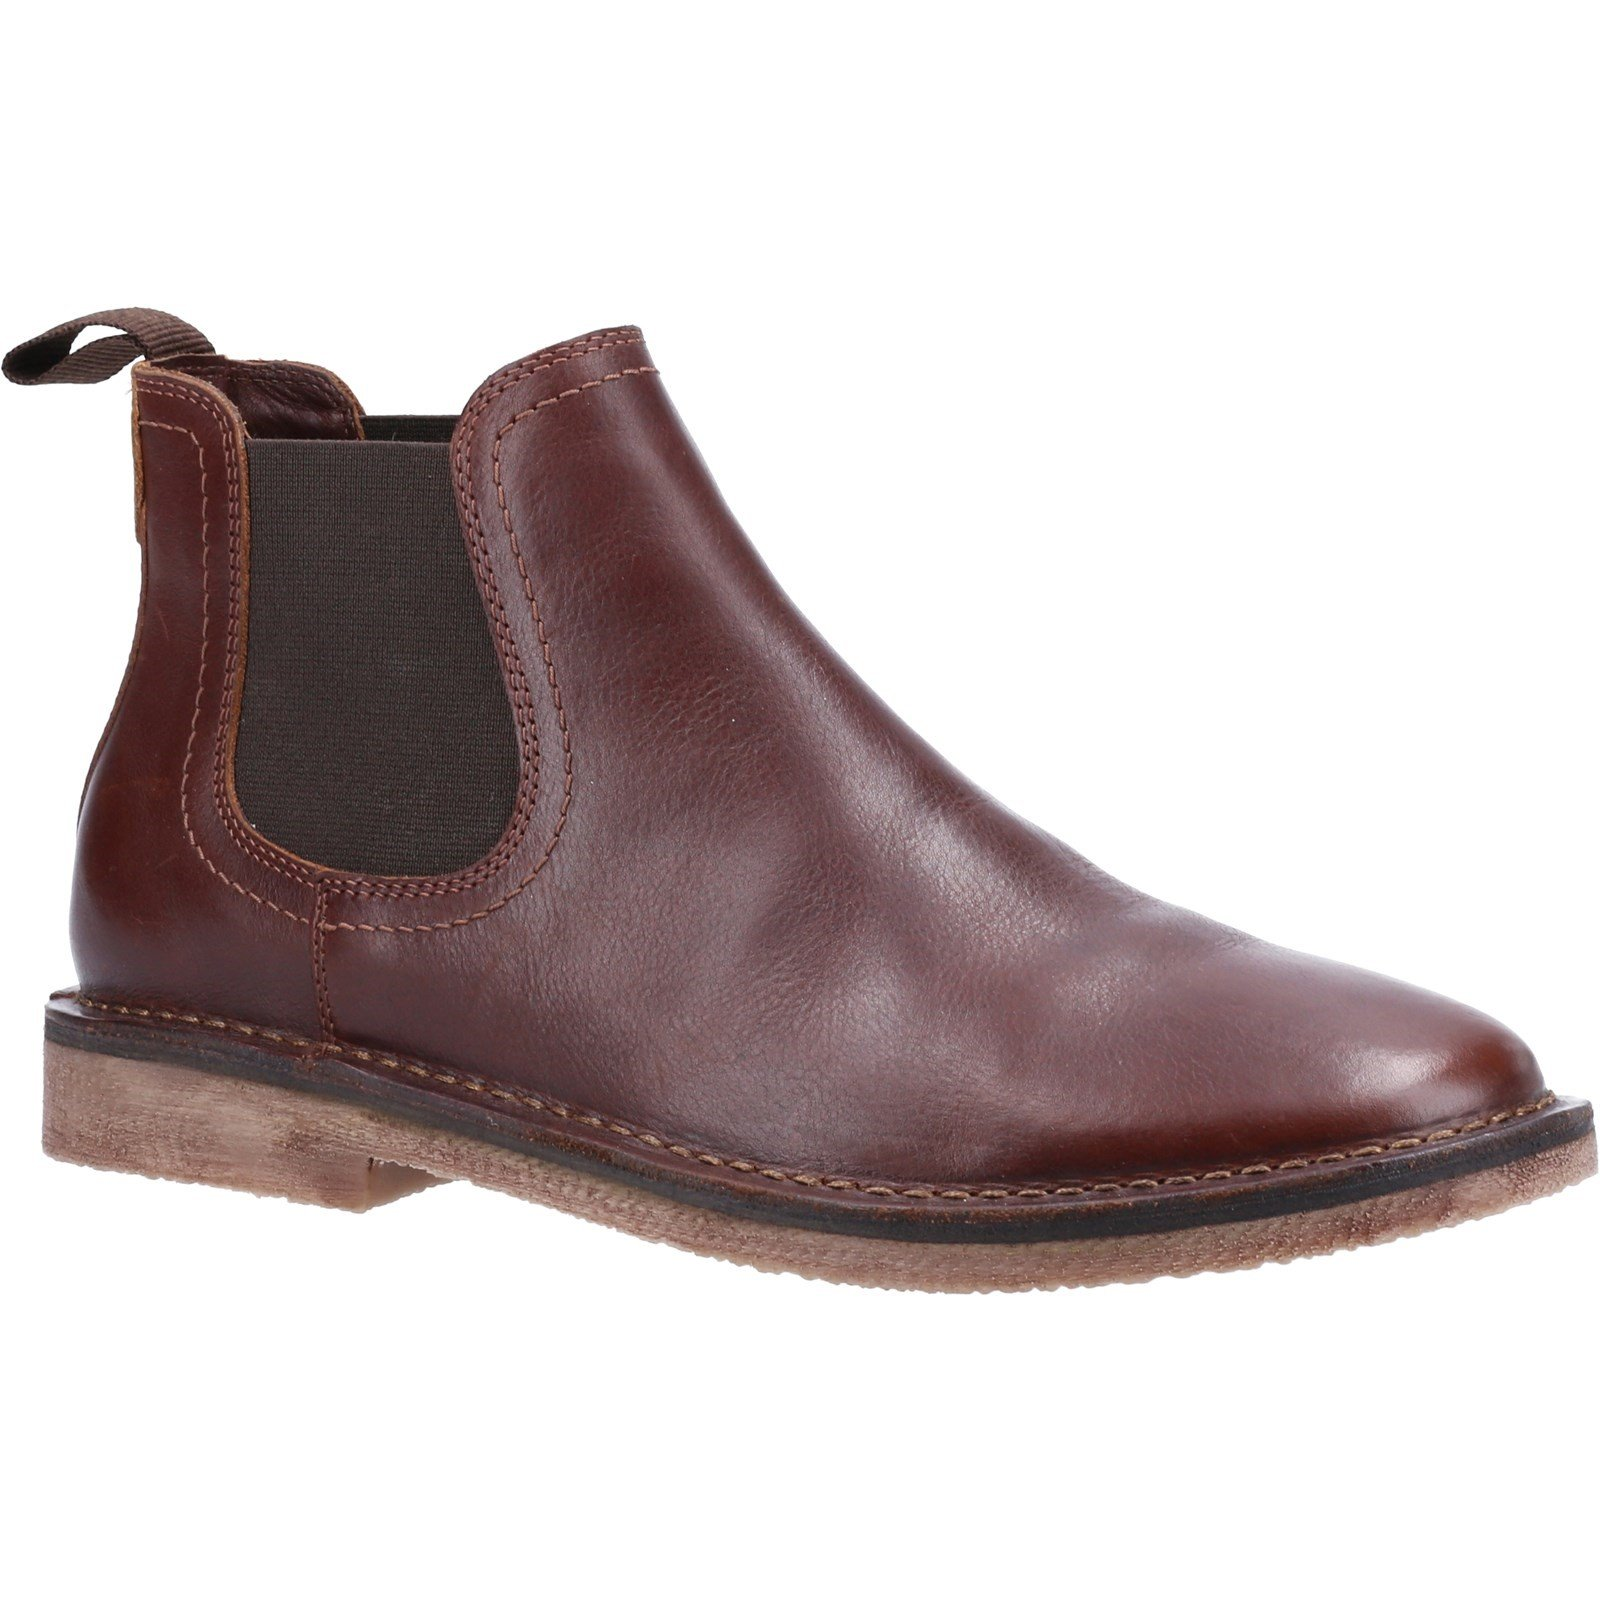 Hush Puppies Men's Shaun Leather Chelsea Boot Various Colours 32897 - Brown 12